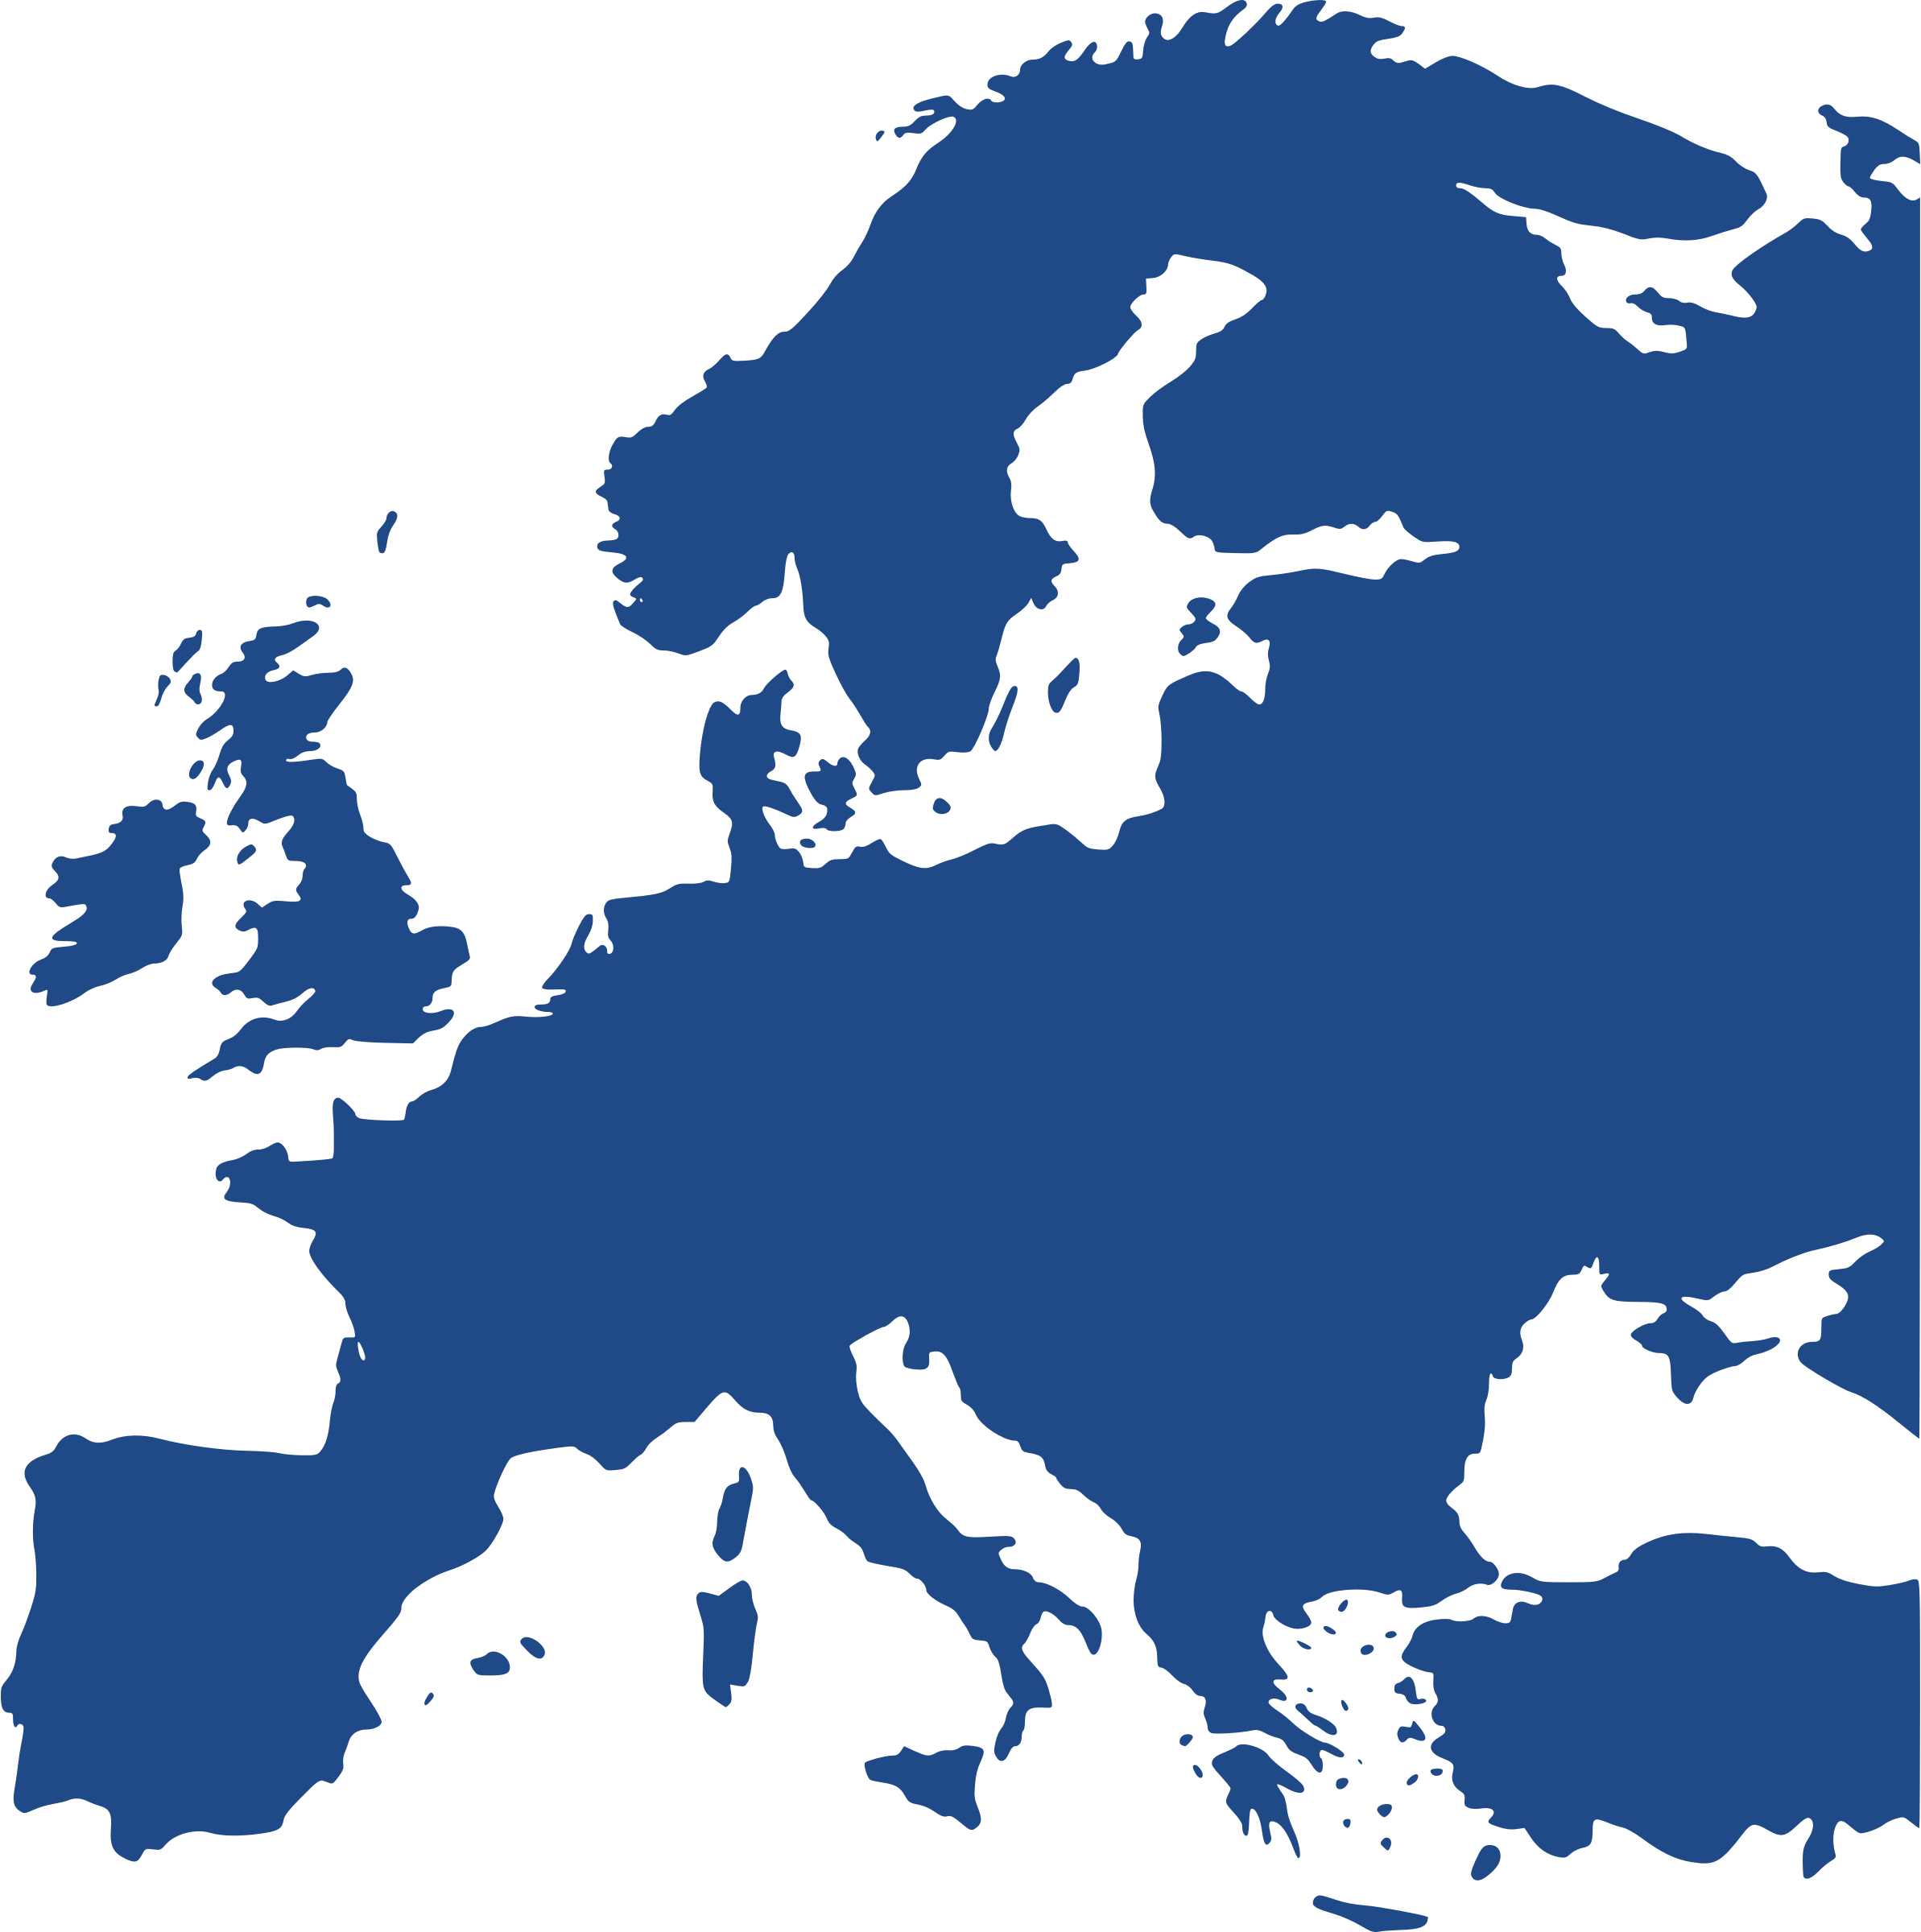 Map of Europe (equidistant) by berteh